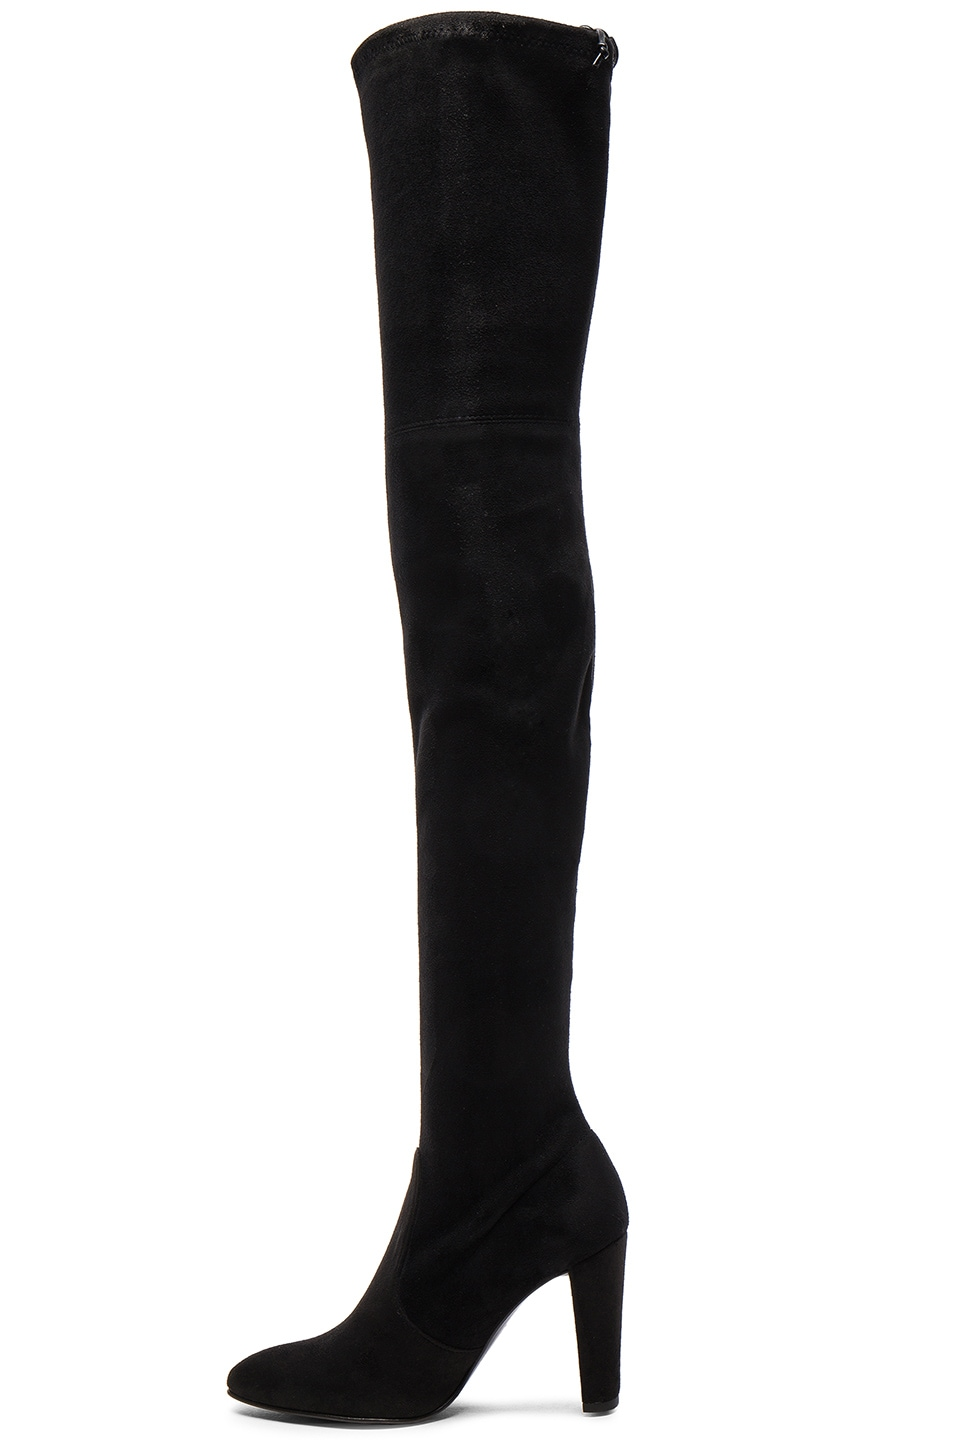 Image 5 of Stuart Weitzman Suede Alllegs Boots in Black